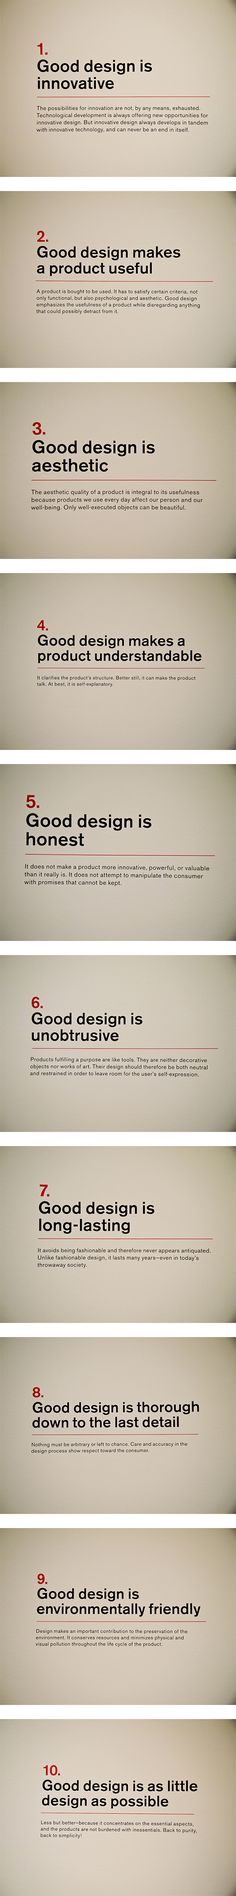 "Dieter Rams' ""Ten principles for Good Design"". If you like UX, design, or design… Visual Design, Ux Design, Tool Design, Layout Design, Branding Design, Life Design, Design Thinking, Lettering, Typography"